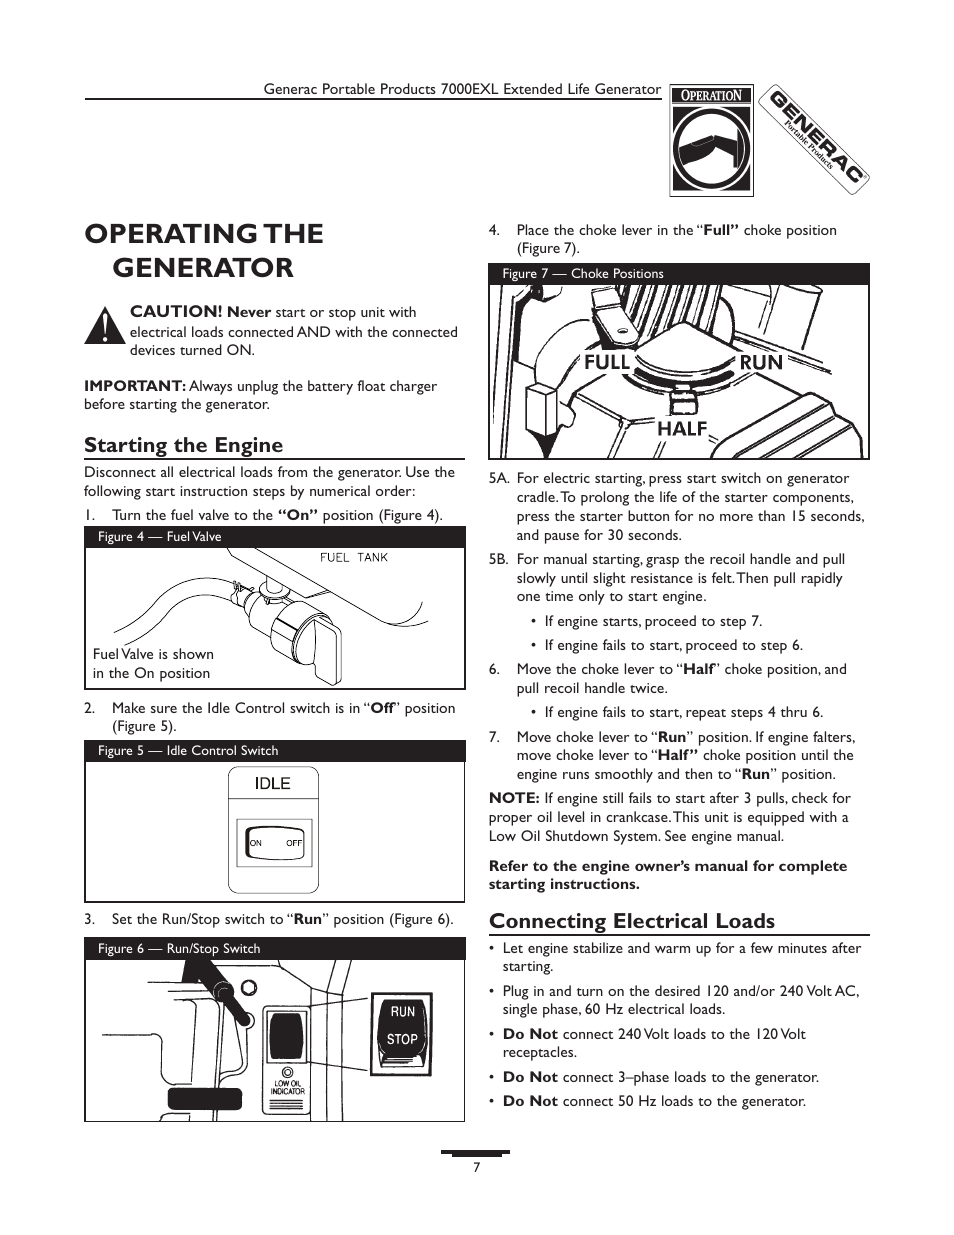 Operating The Generator Starting Engine Connecting Electrical 120 Volt Wiring Diagram Loads Generac 7000exl User Manual Page 7 24